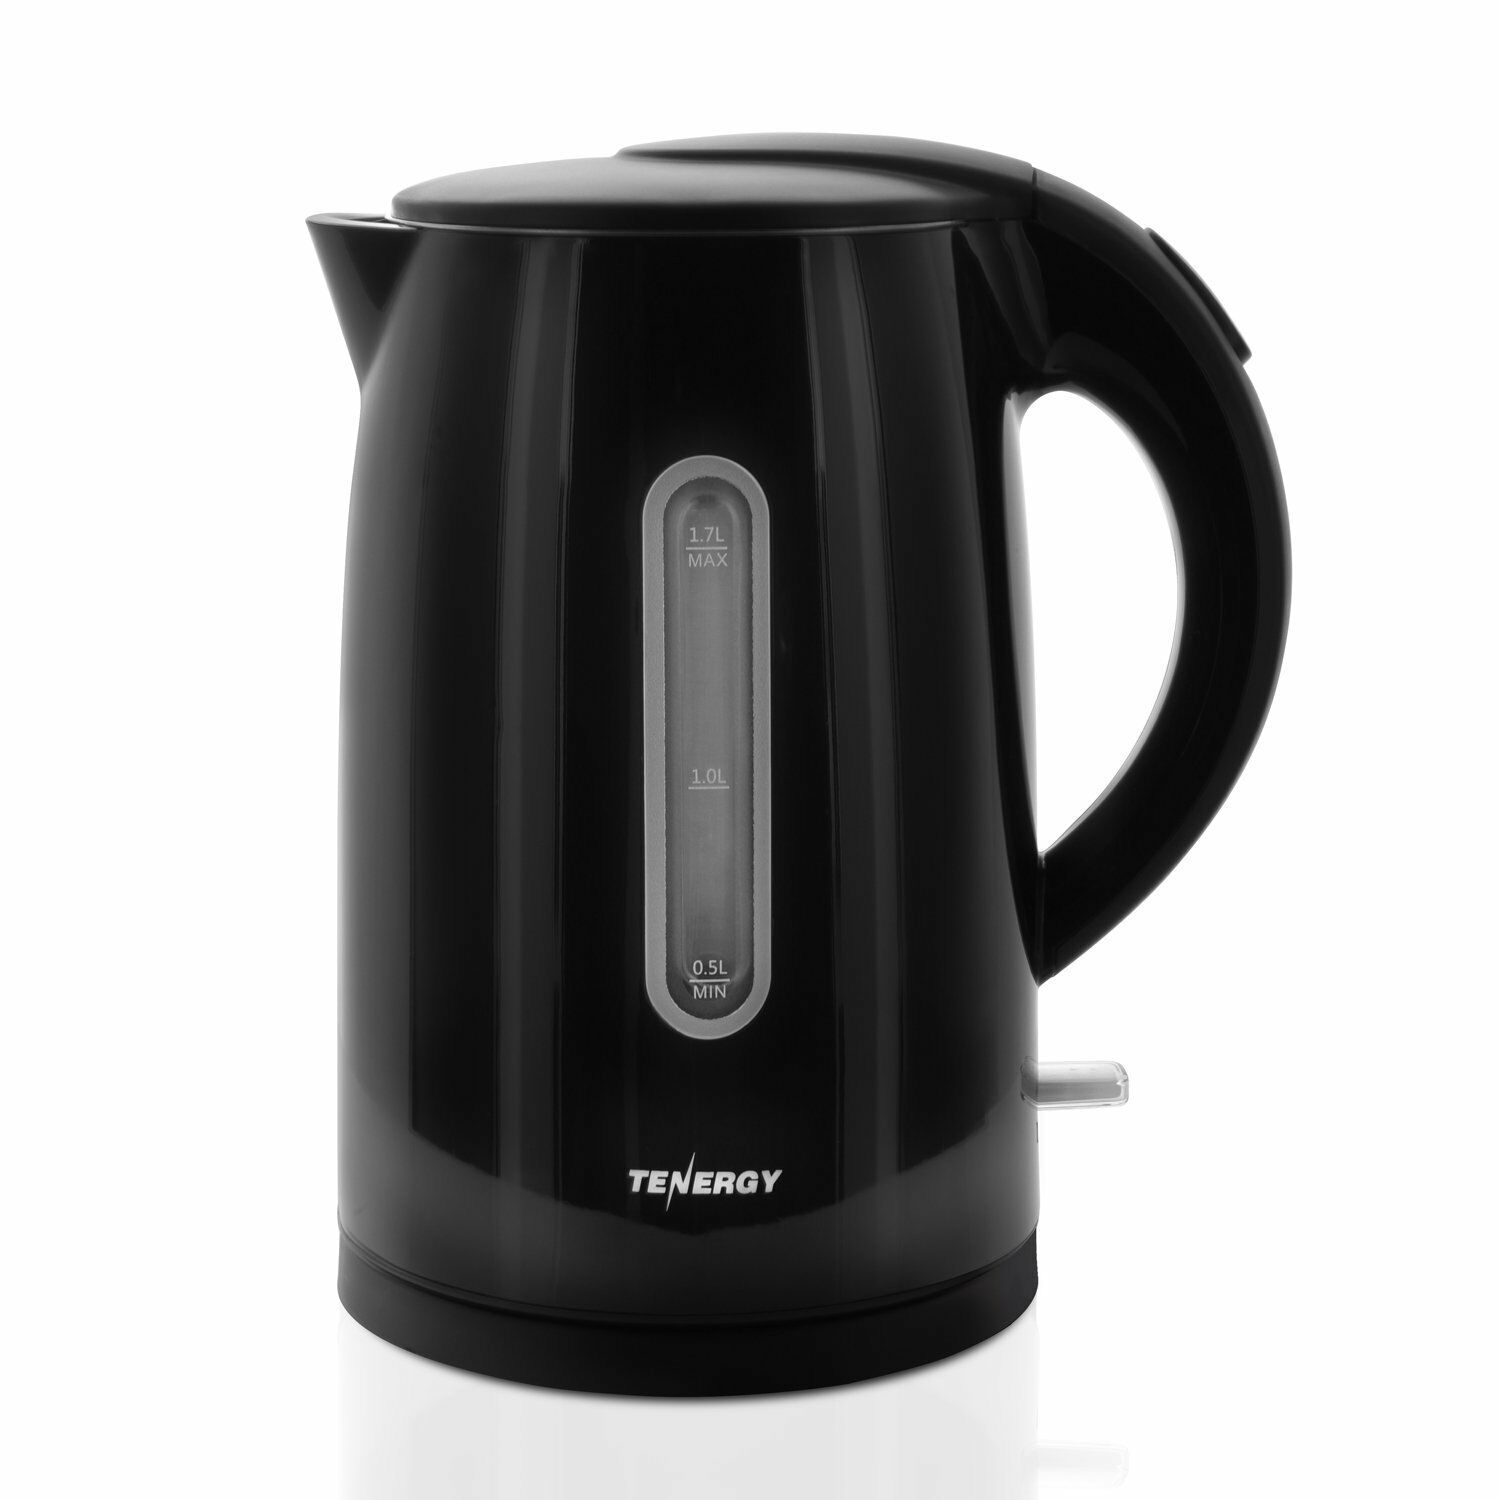 TenergyElectric Kettle1.7L Double Wall,Cool Touch Wate